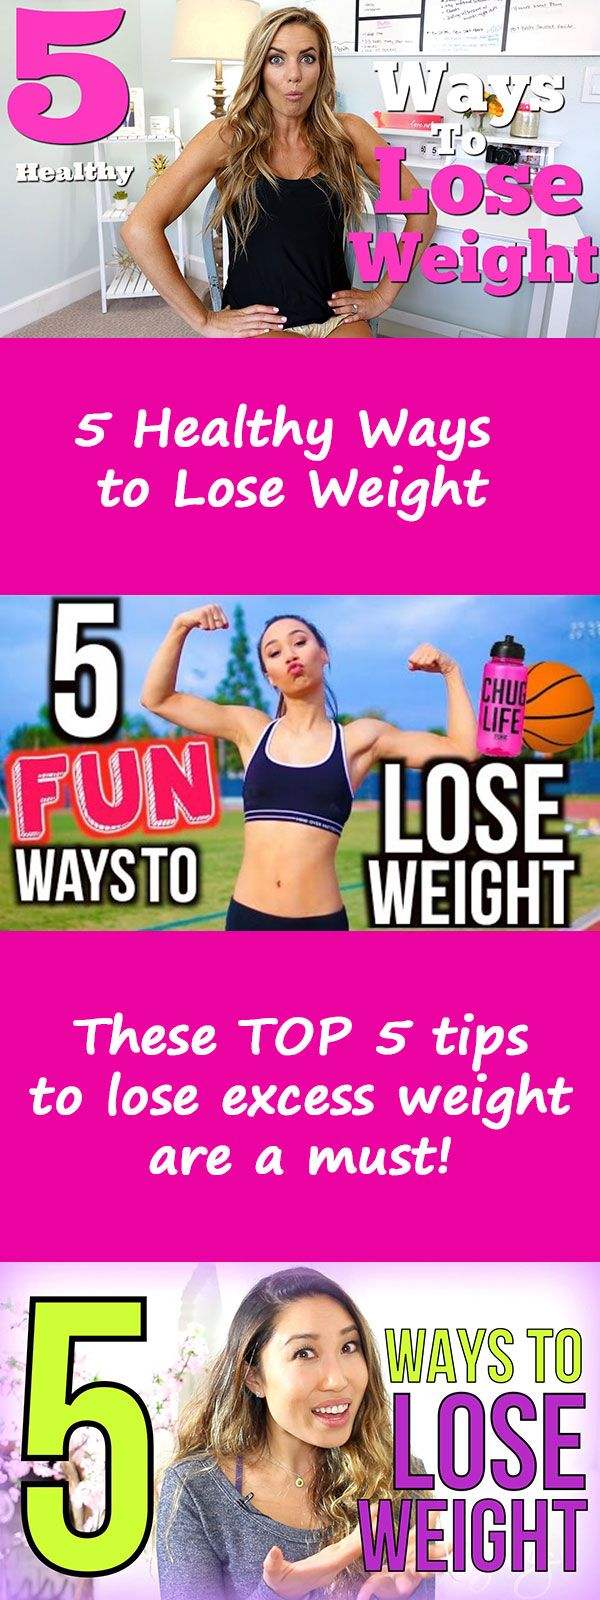 Hcg diet tips to lose more weight